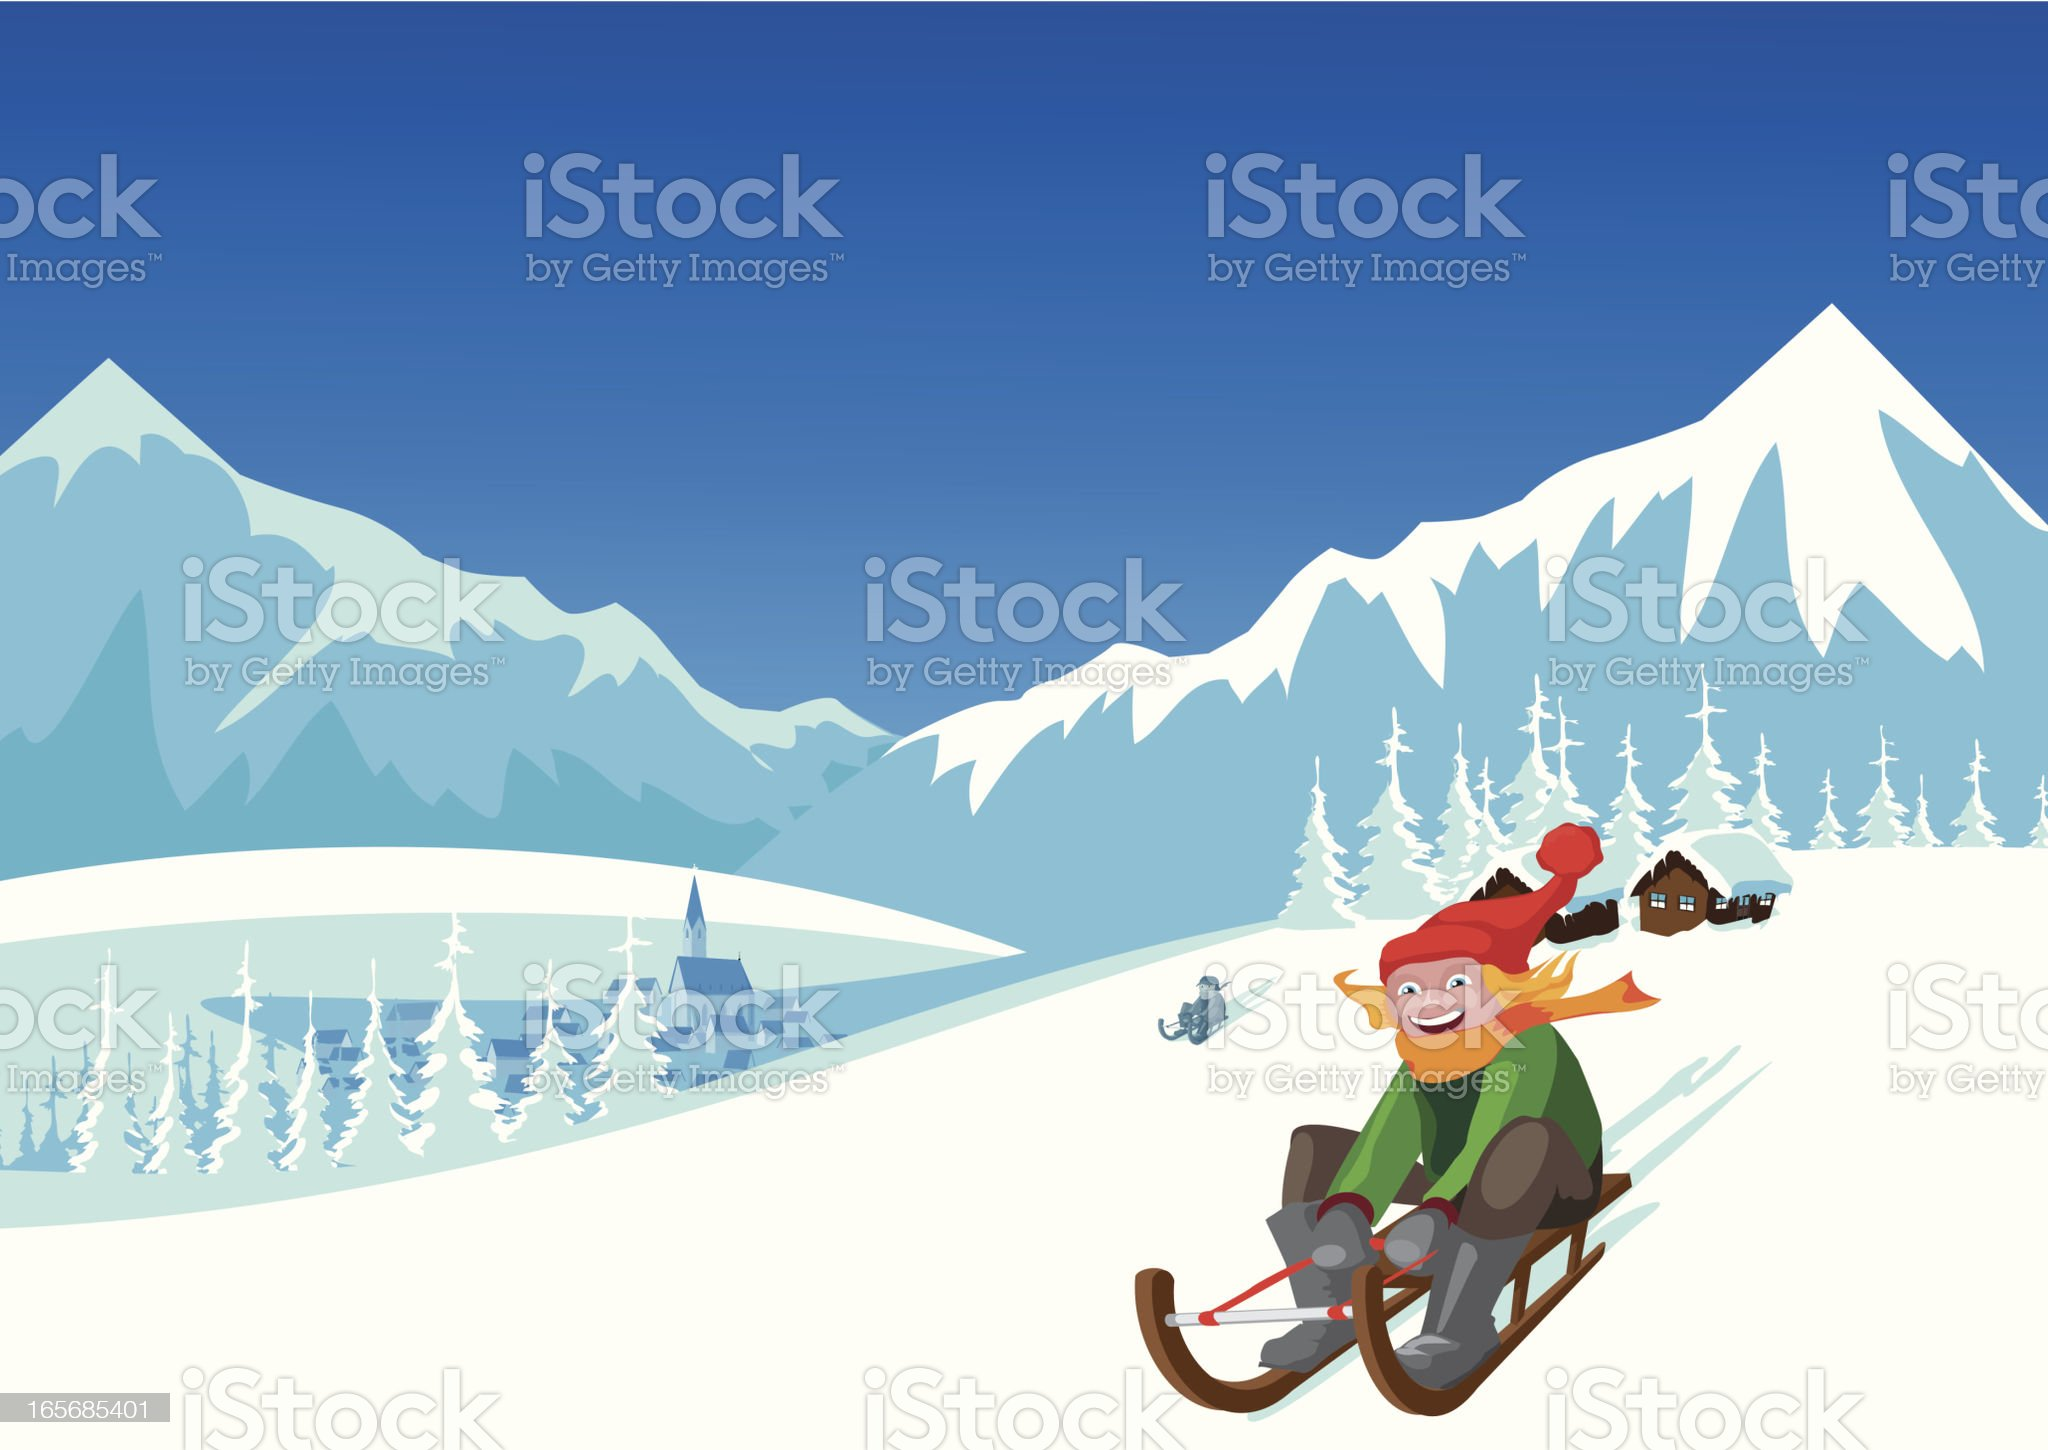 winter landscape royalty-free stock vector art